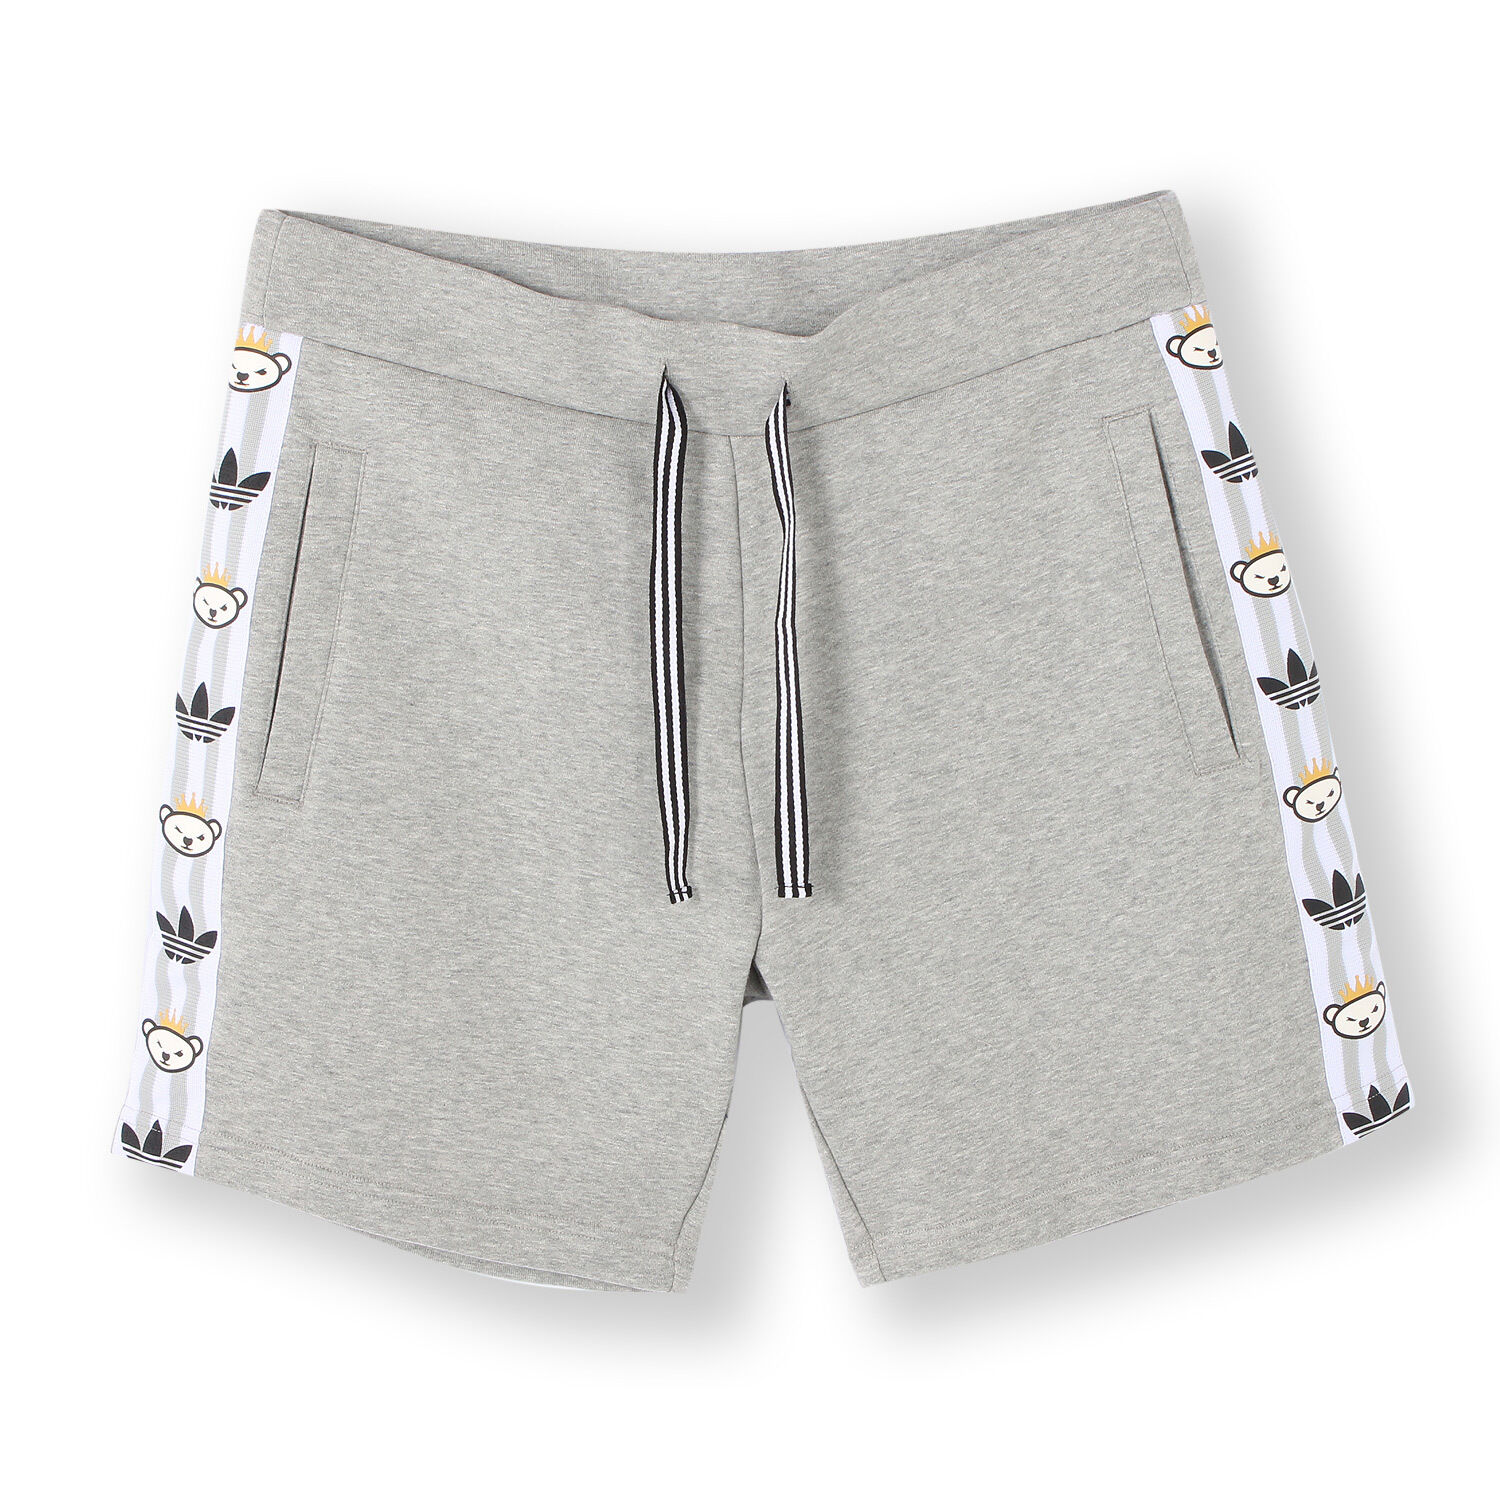 ADIDAS S24522 Nigo 25 LOGO Mid-Grey Heather SPORT Drawstring SHORTS Free Ship